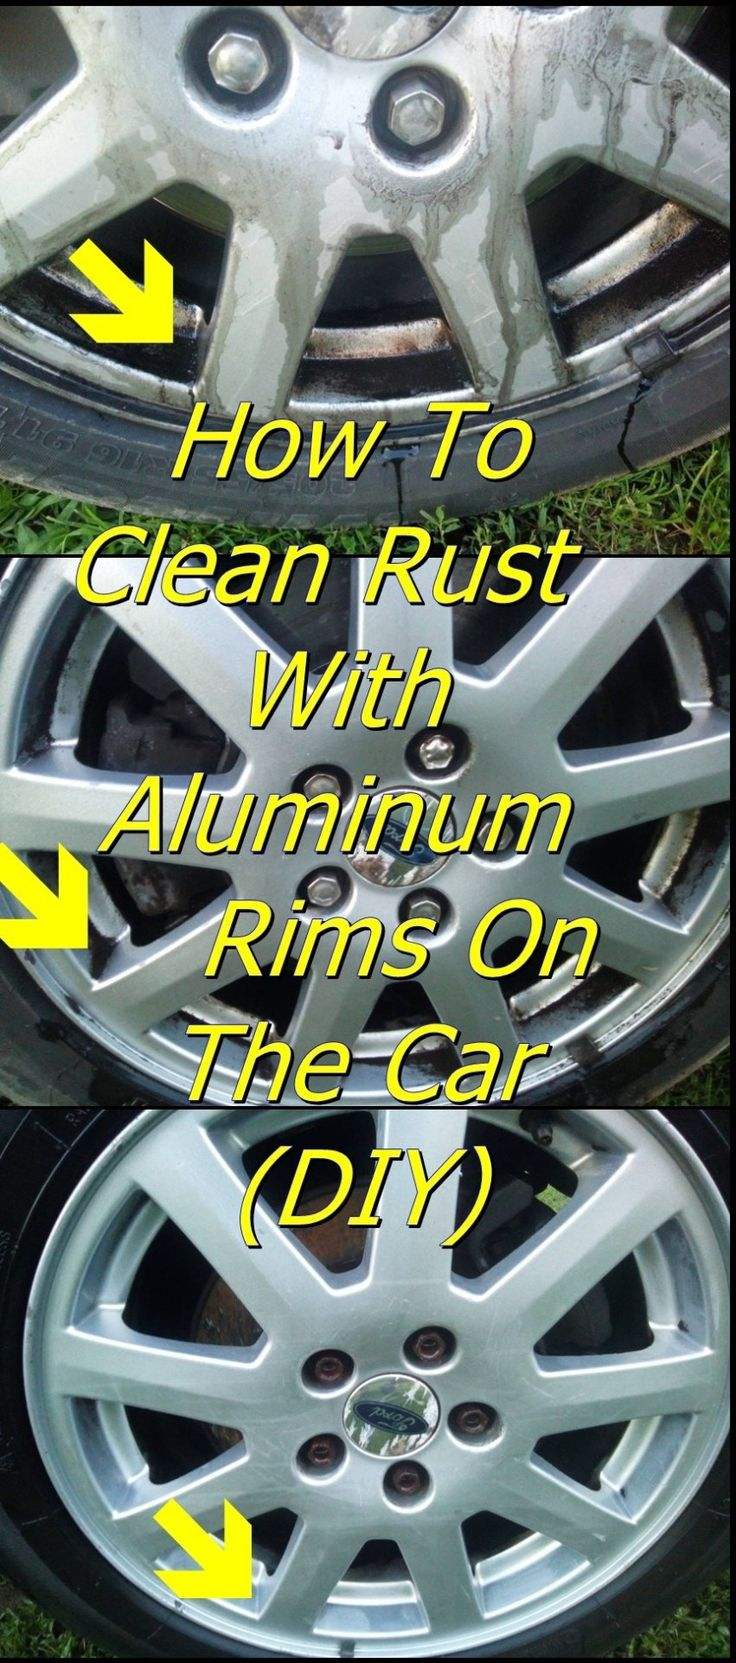 Sweet MacawHow To Clean Rust With Aluminum Rims On The